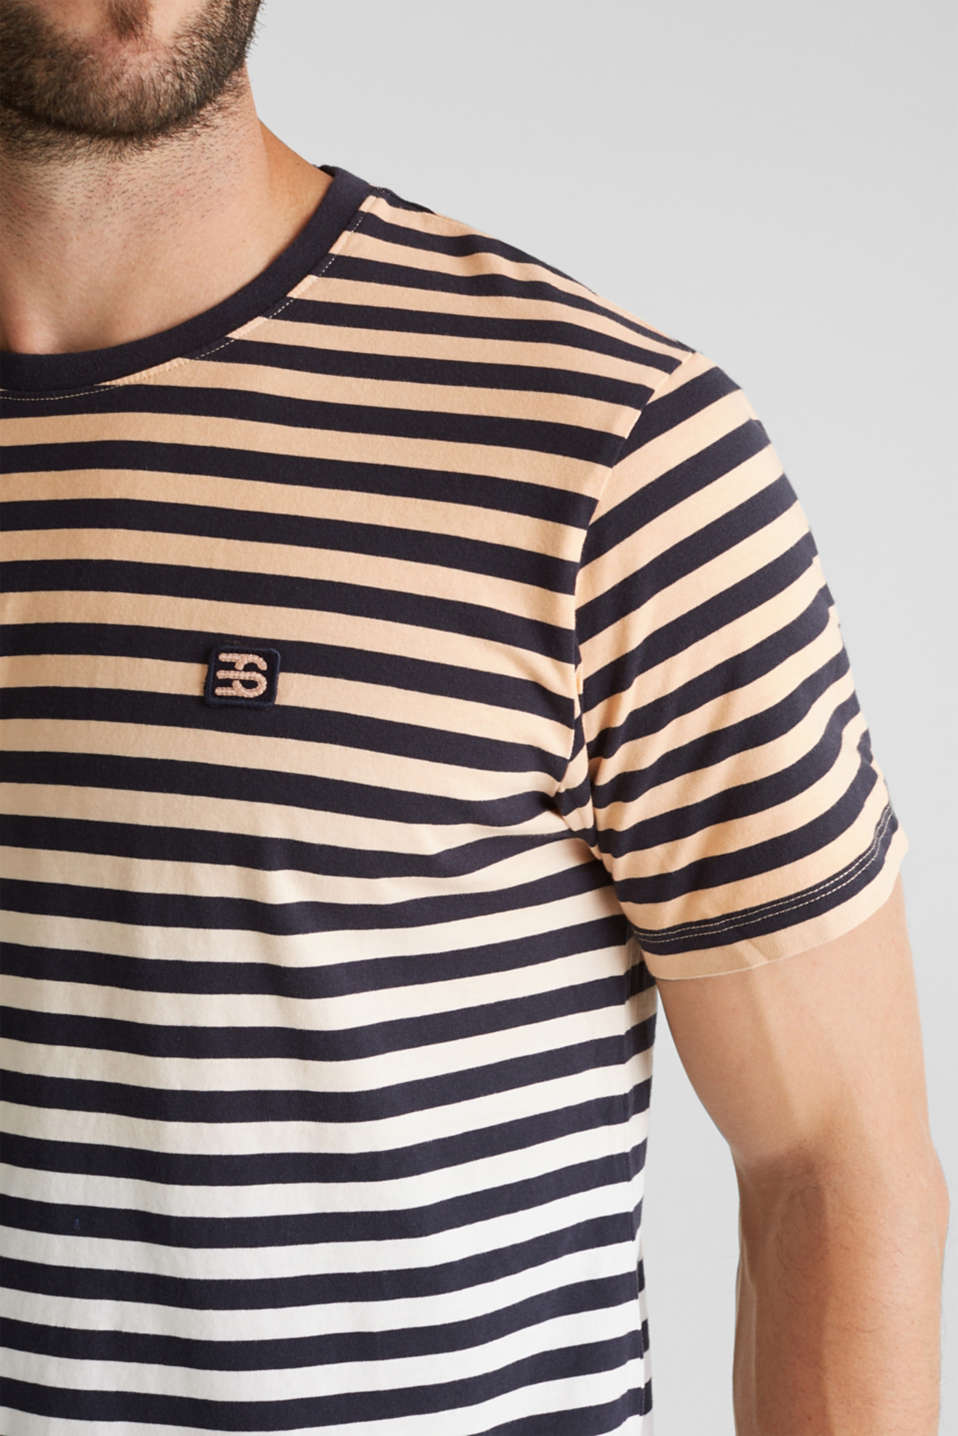 Jersey T-shirt in 100% cotton, PEACH 3, detail image number 1